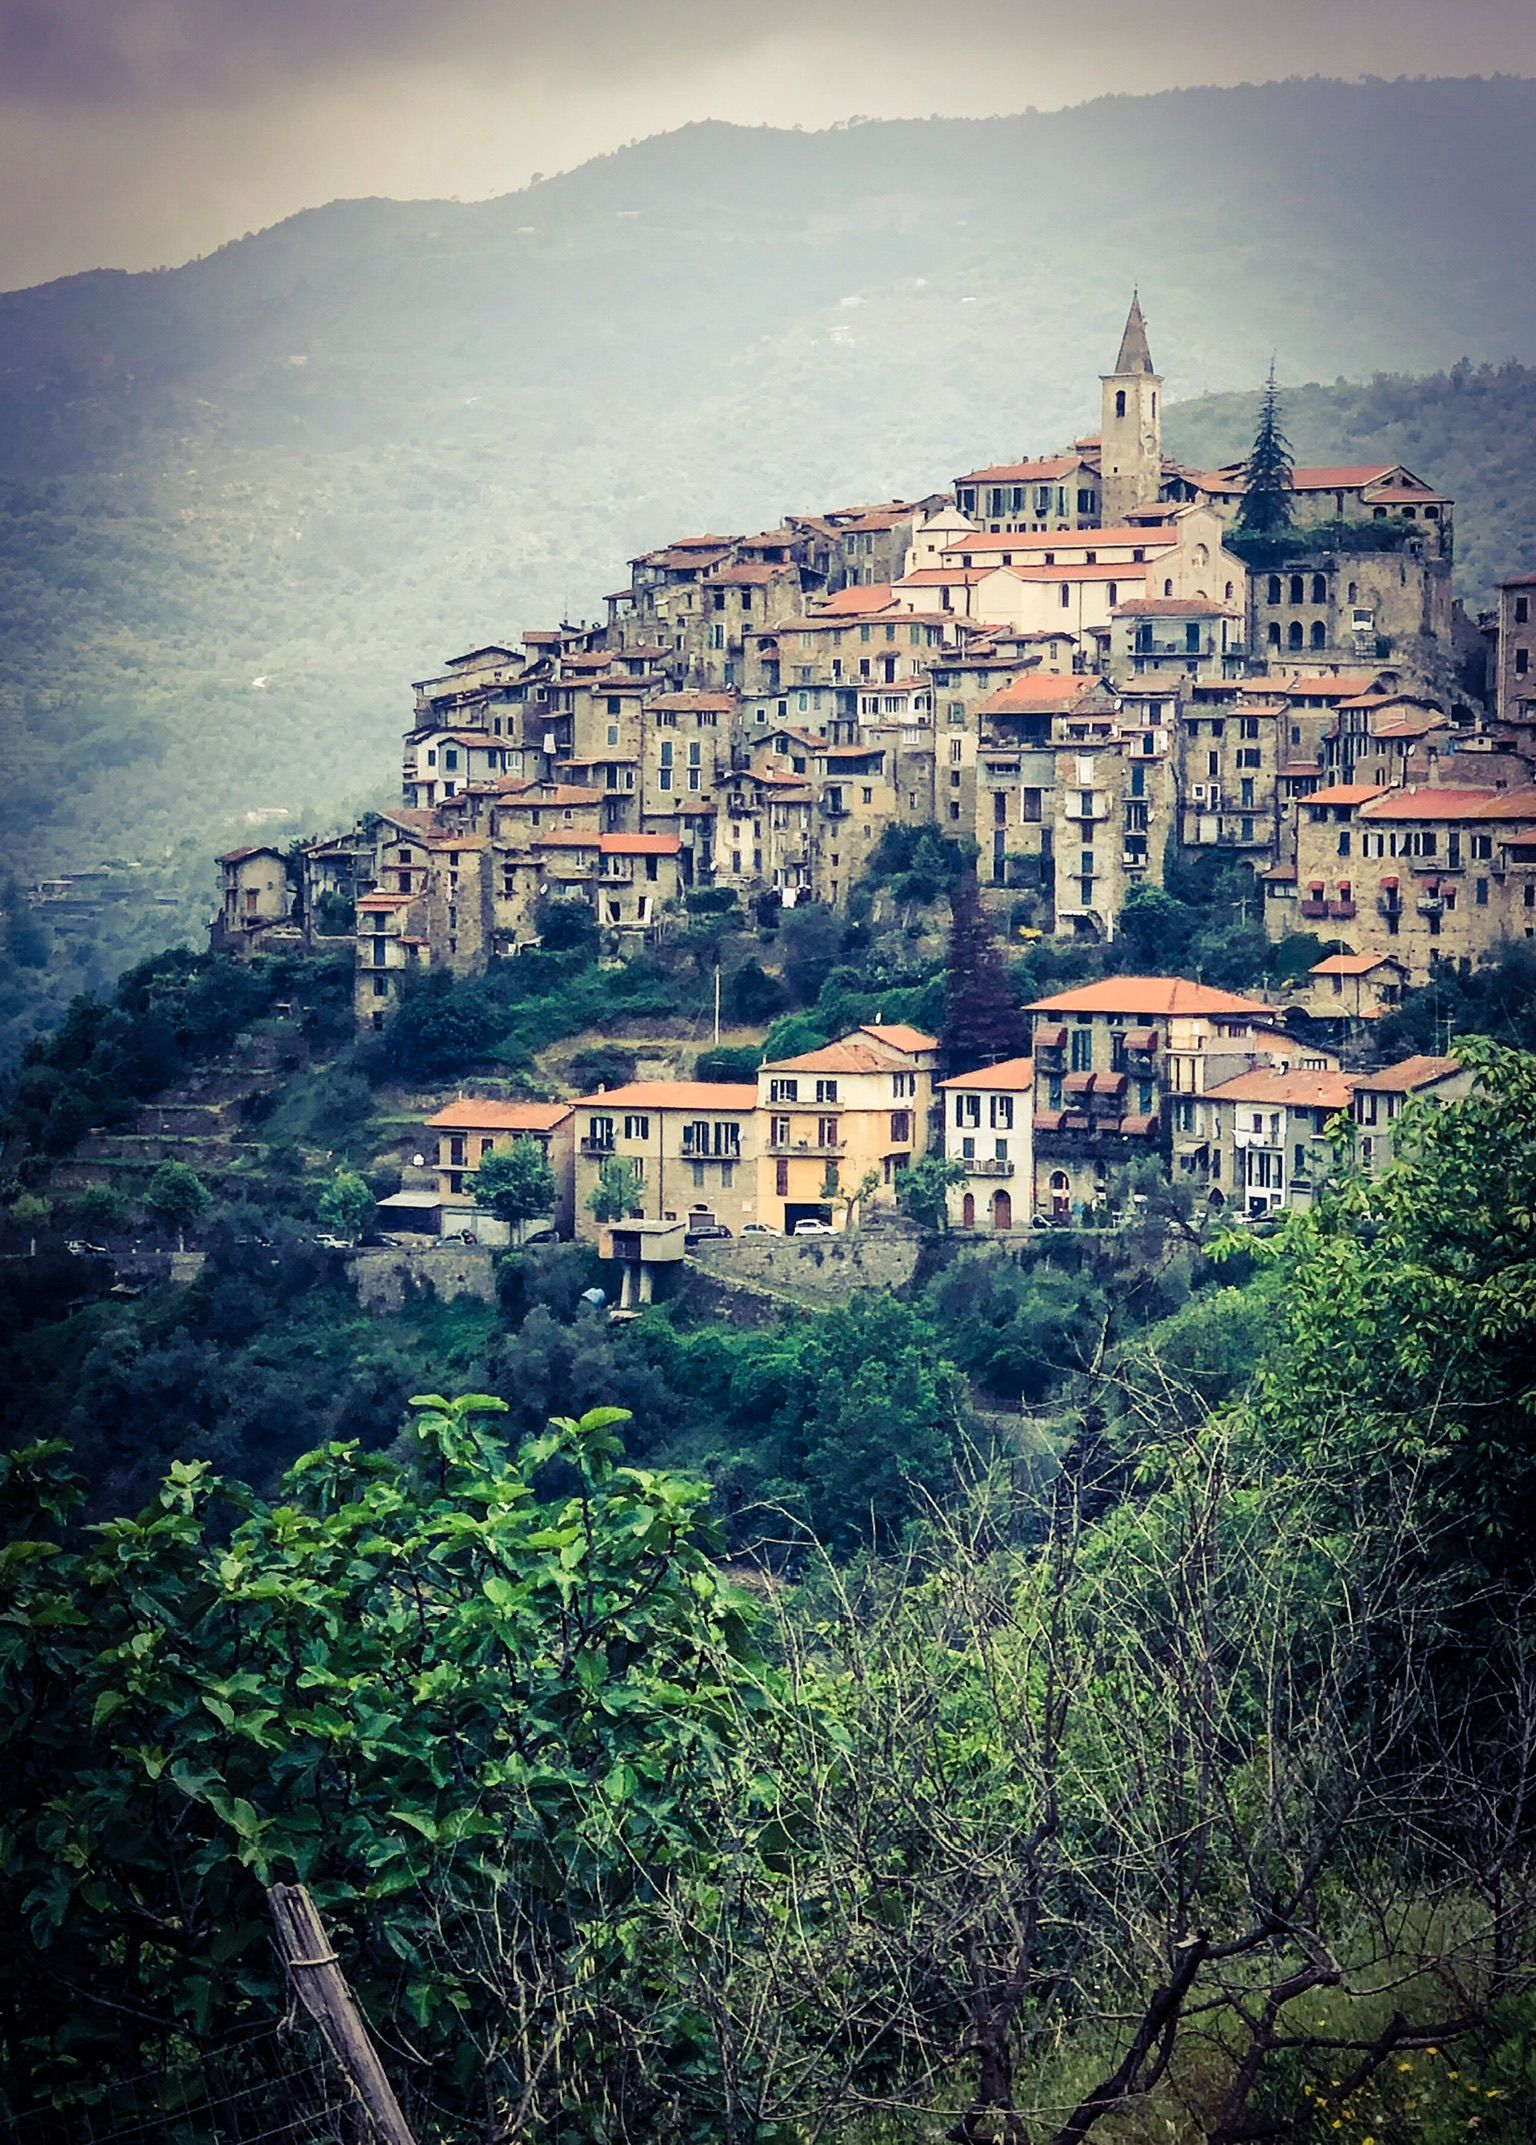 Village of Apricale